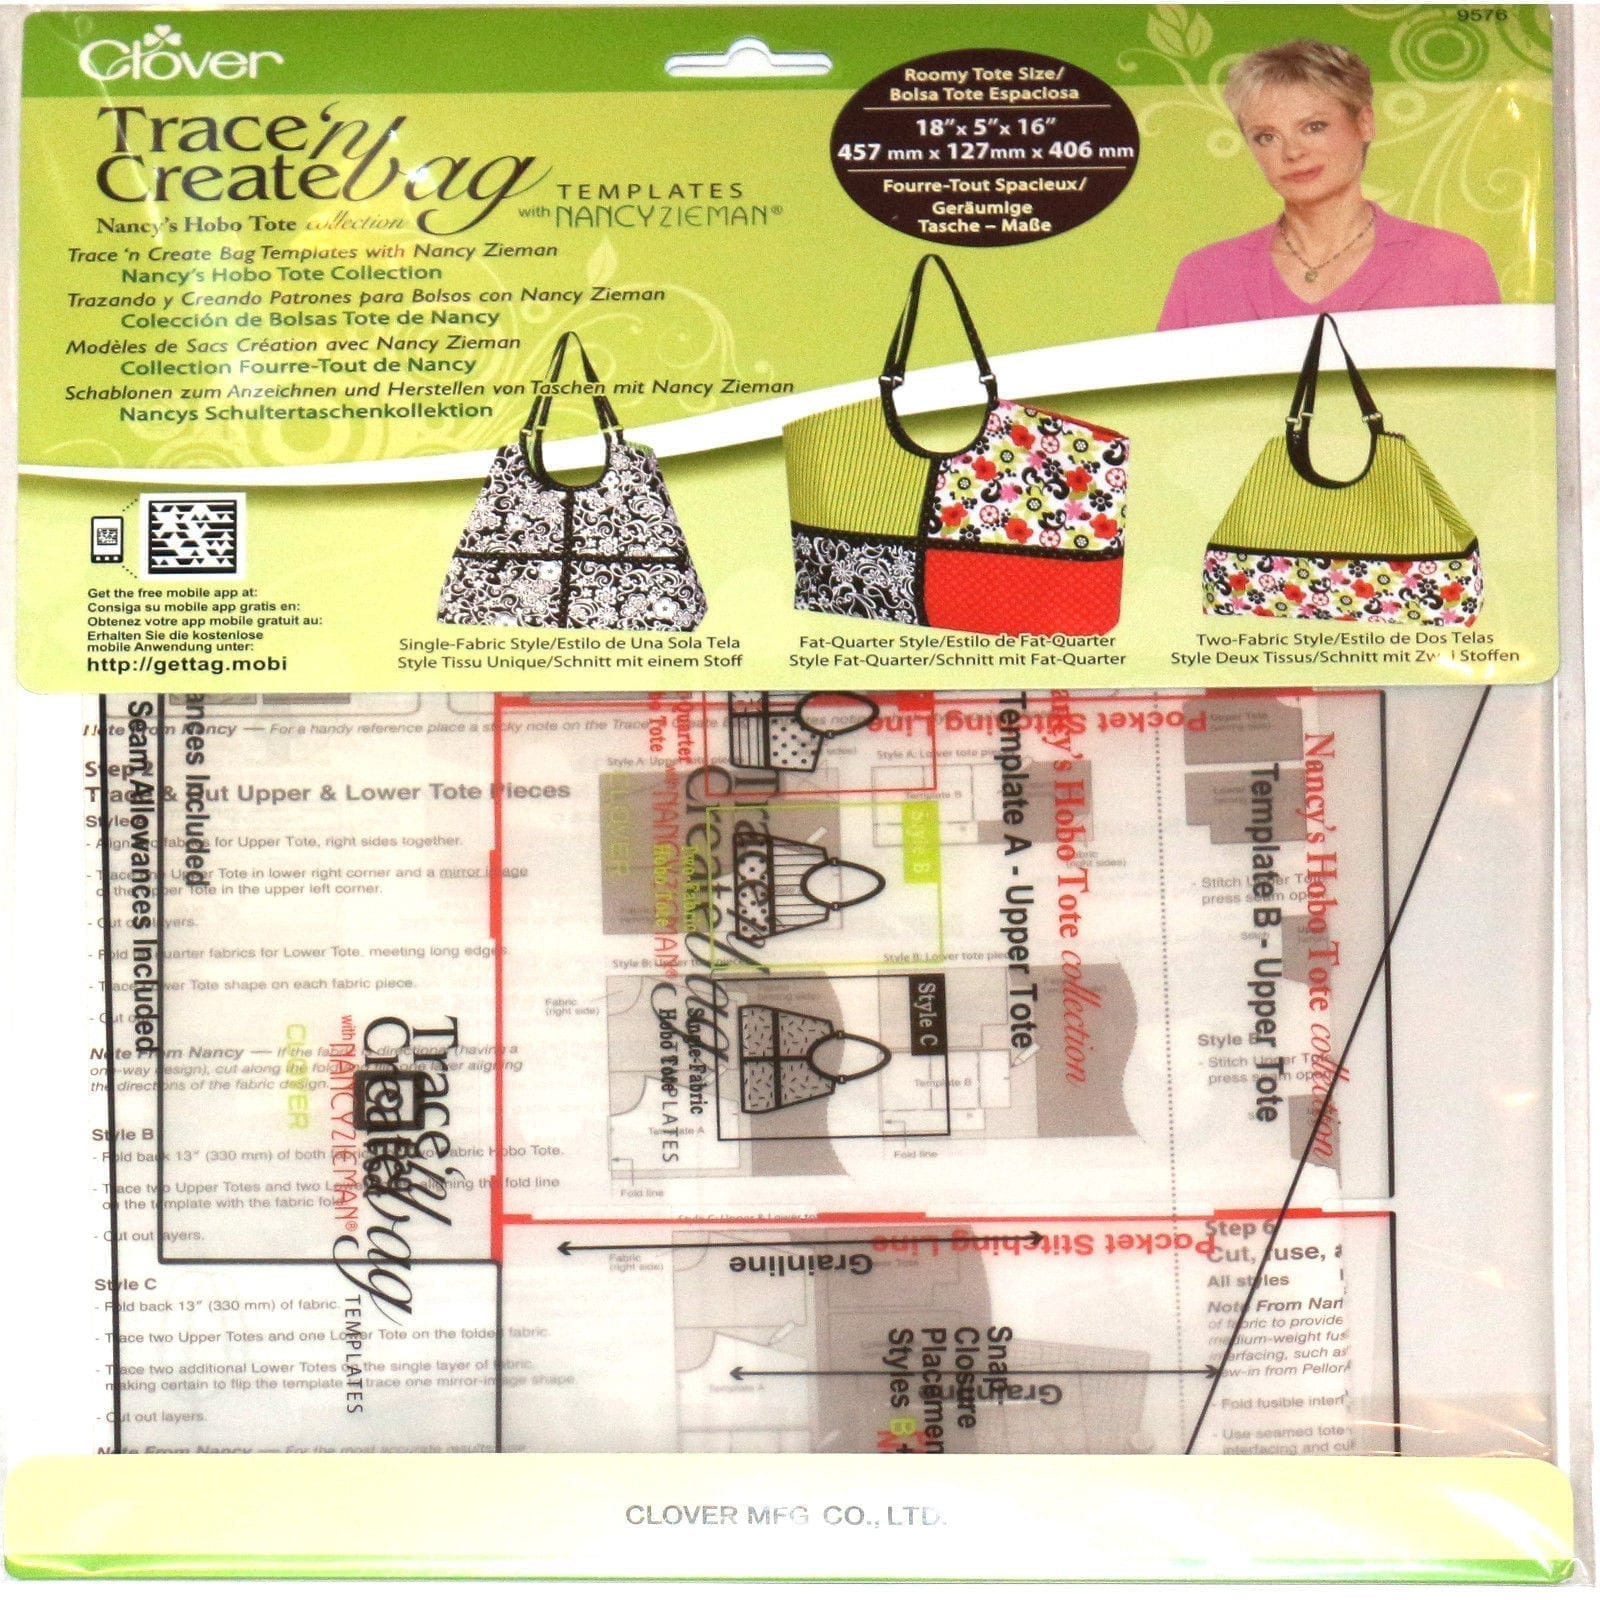 Trace n create bag templates with new zealand hobo tote trace n create bag templates with new zealand hobo tote collection maxwellsz